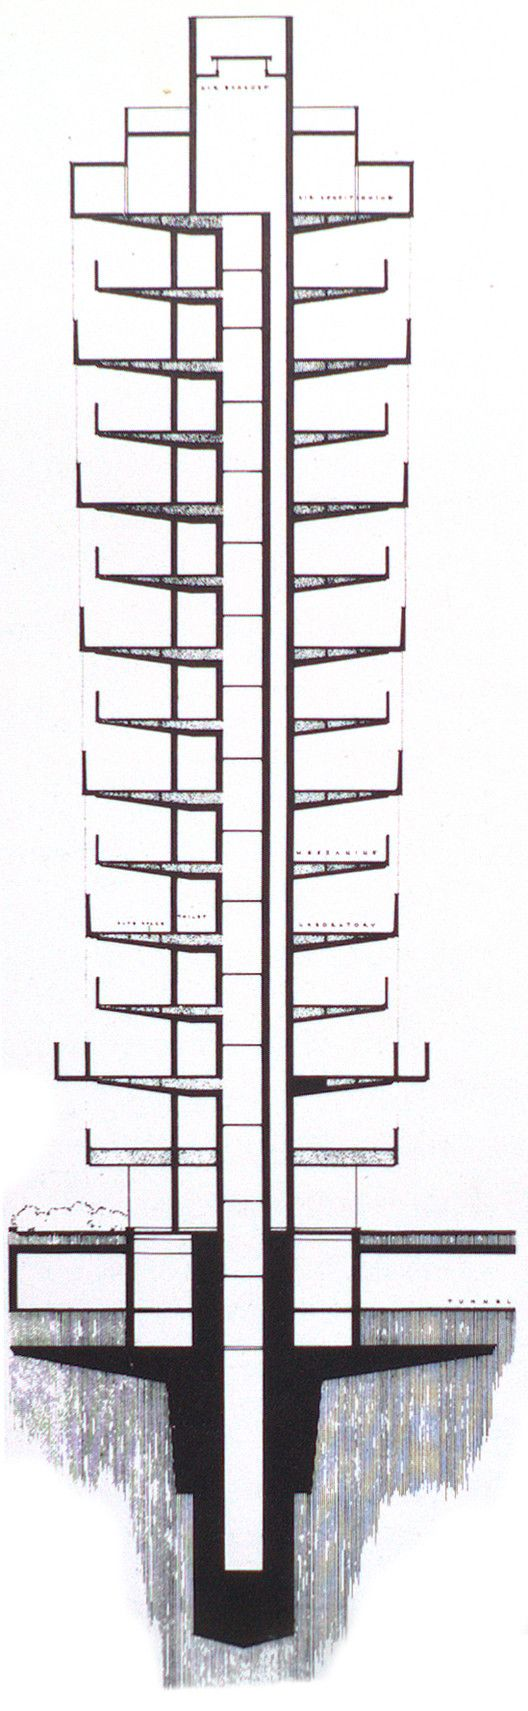 AD Classics: SC Johnson Wax Research Tower,Research tower section